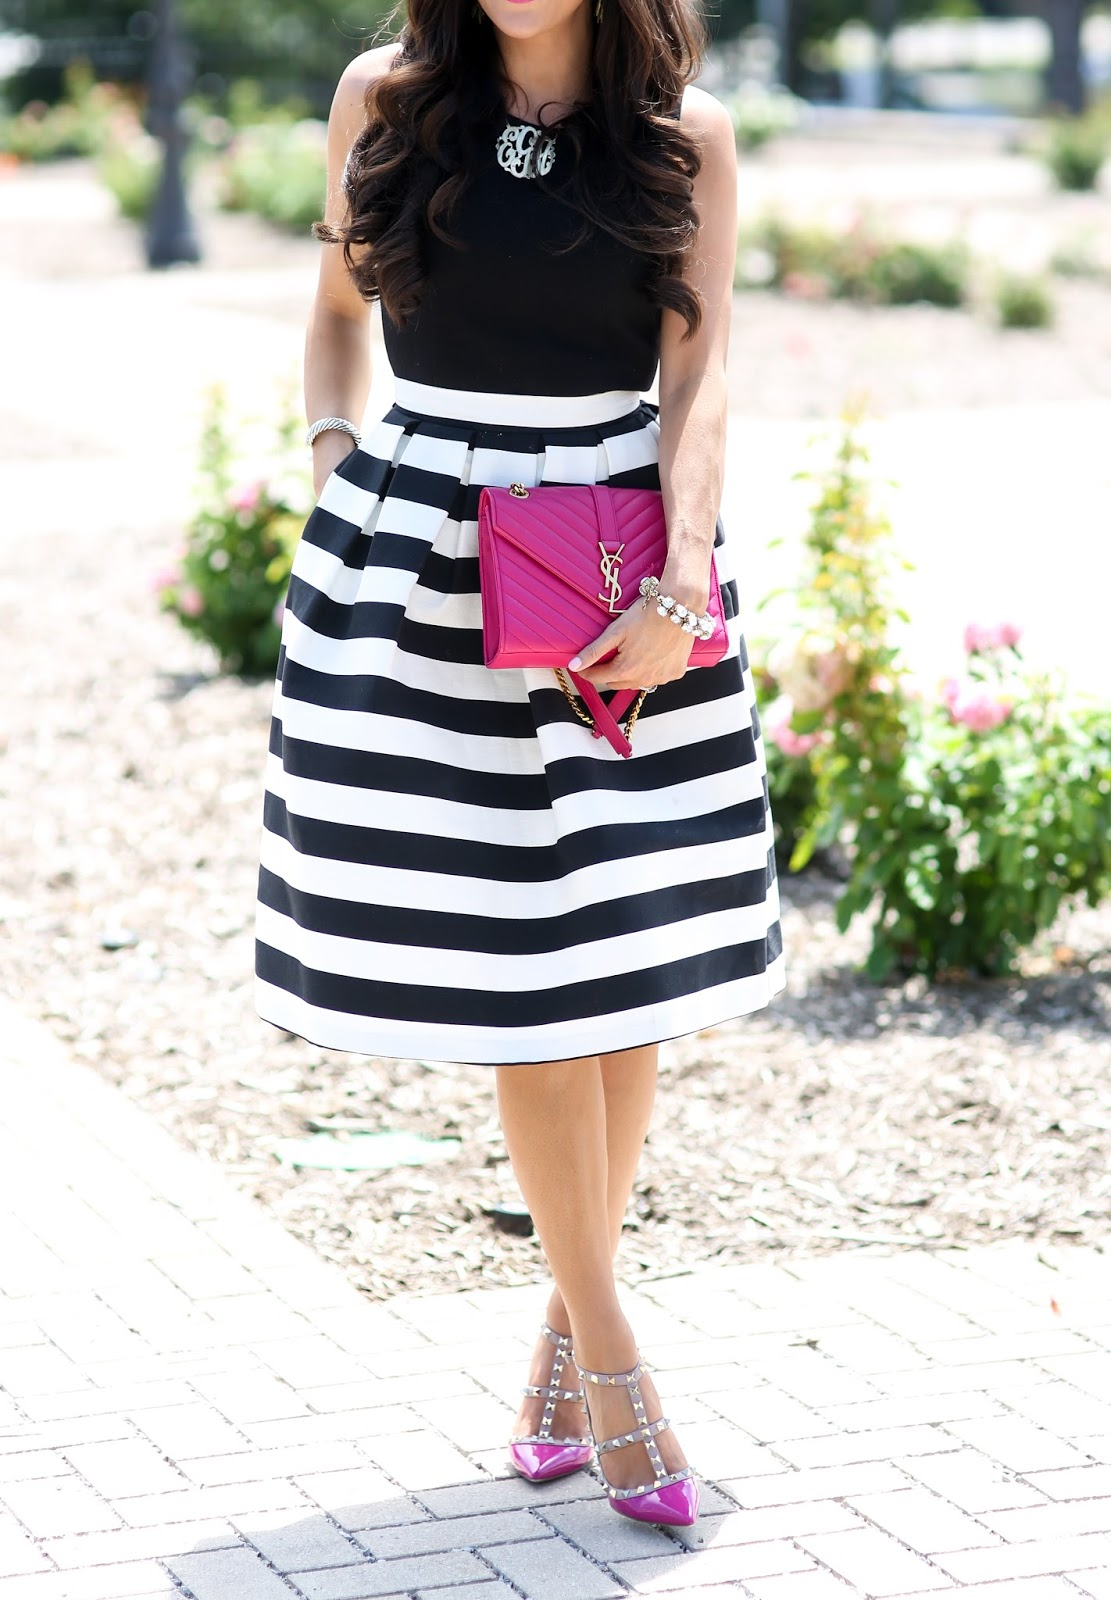 e4ec919a5a96a3 TOP: super old peplum top – similar style here & here | SKIRT: Topshop (LOVE!)  | HEELS: Valentino (pink color here) (dupes HERE & HERE) | SUNGLASSES:  Prada ...